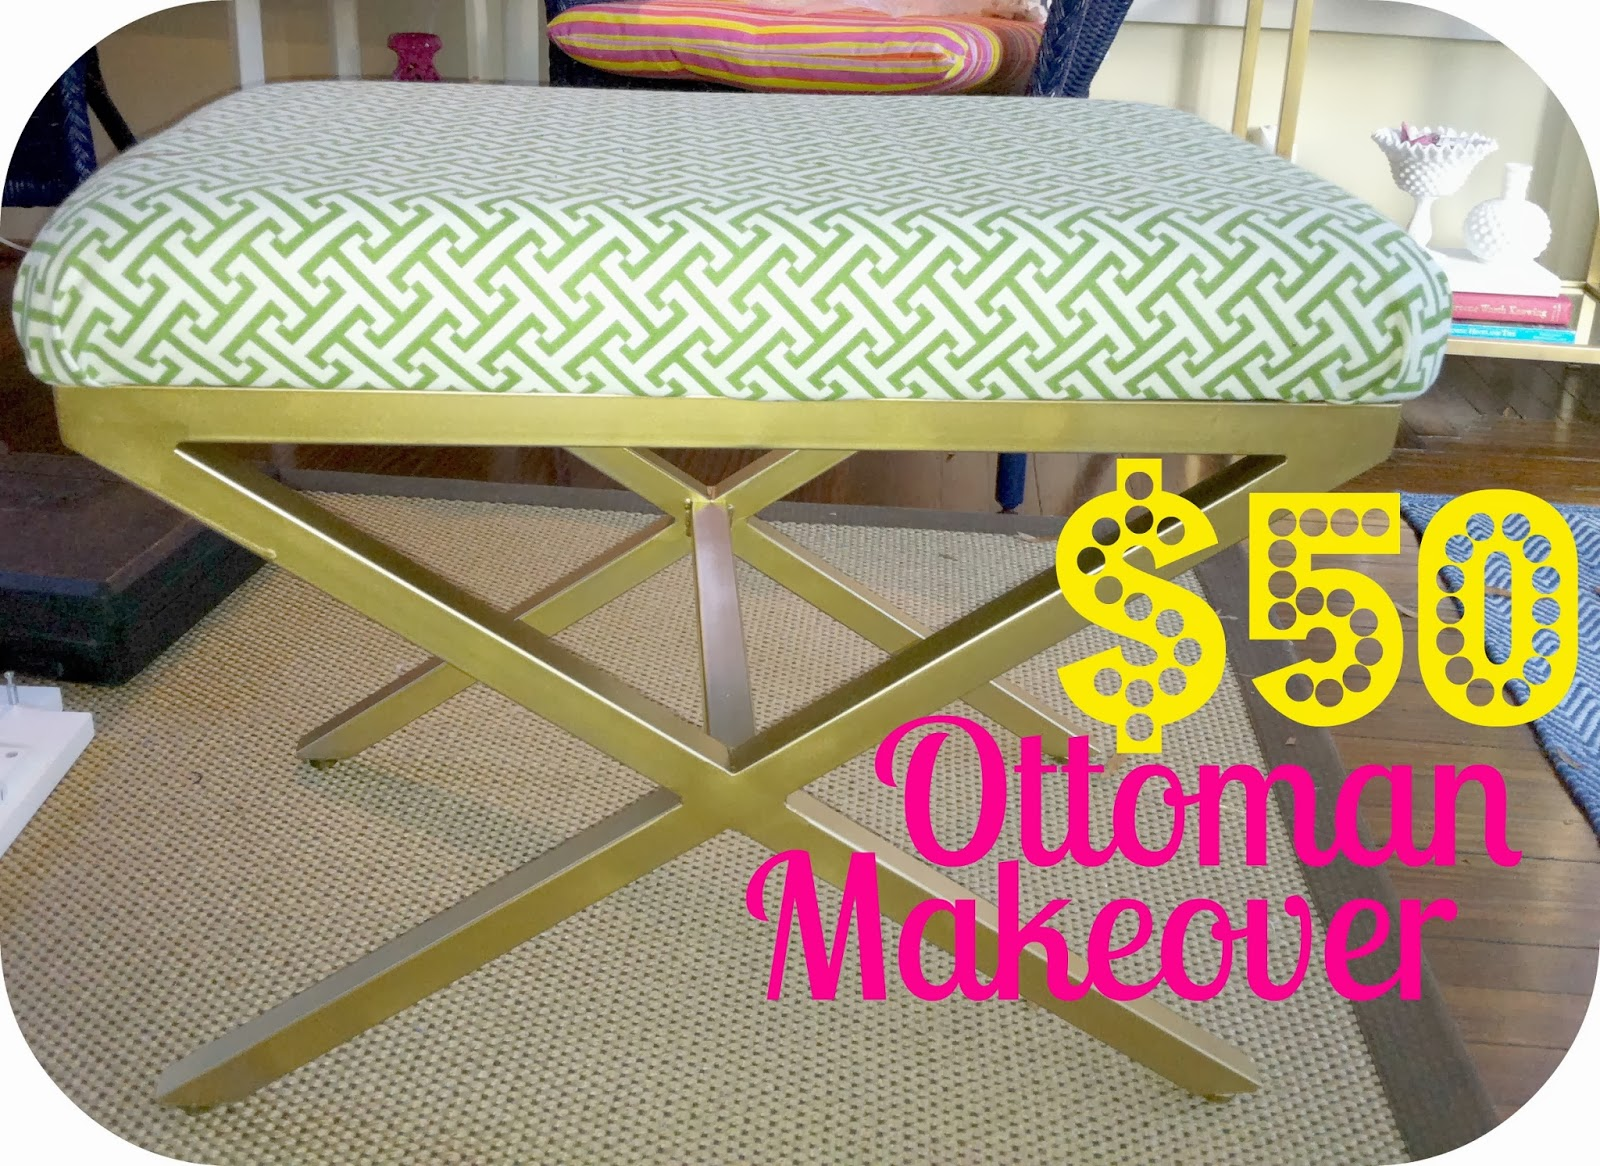 The Luxe Lifestyle 50 X Bench Ottoman Makeover